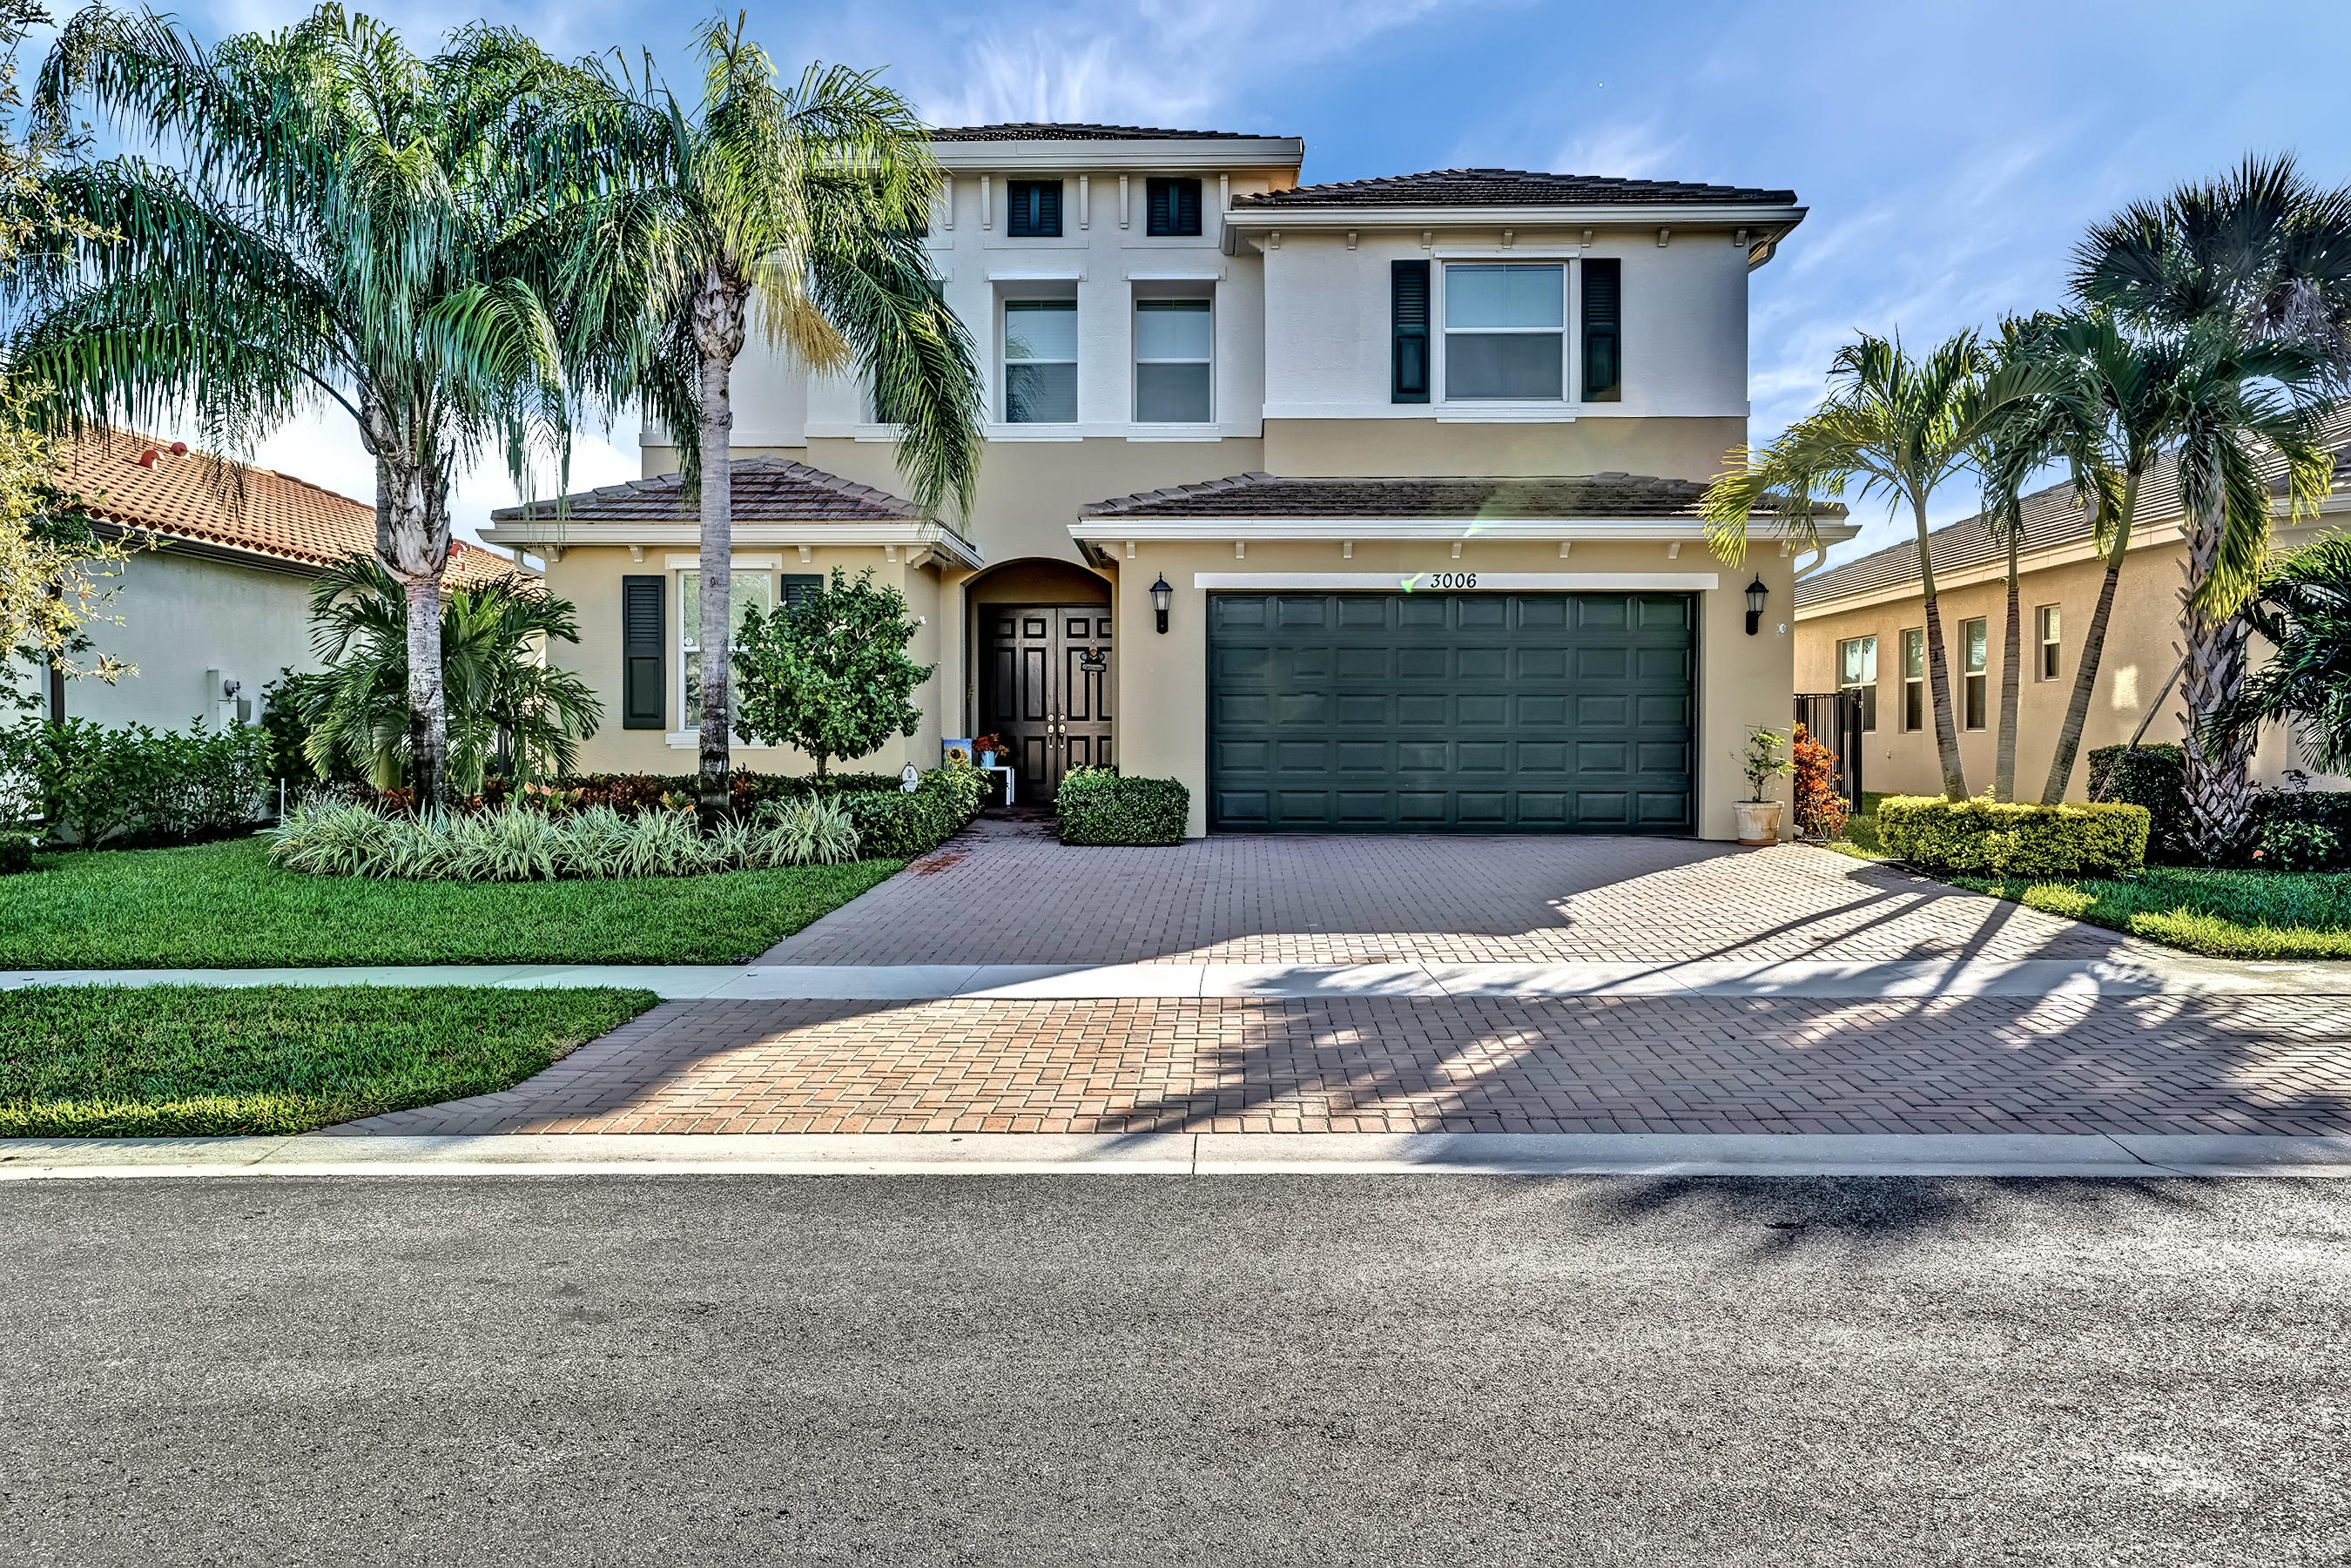 3006 Strada Court, Royal Palm Beach, Florida